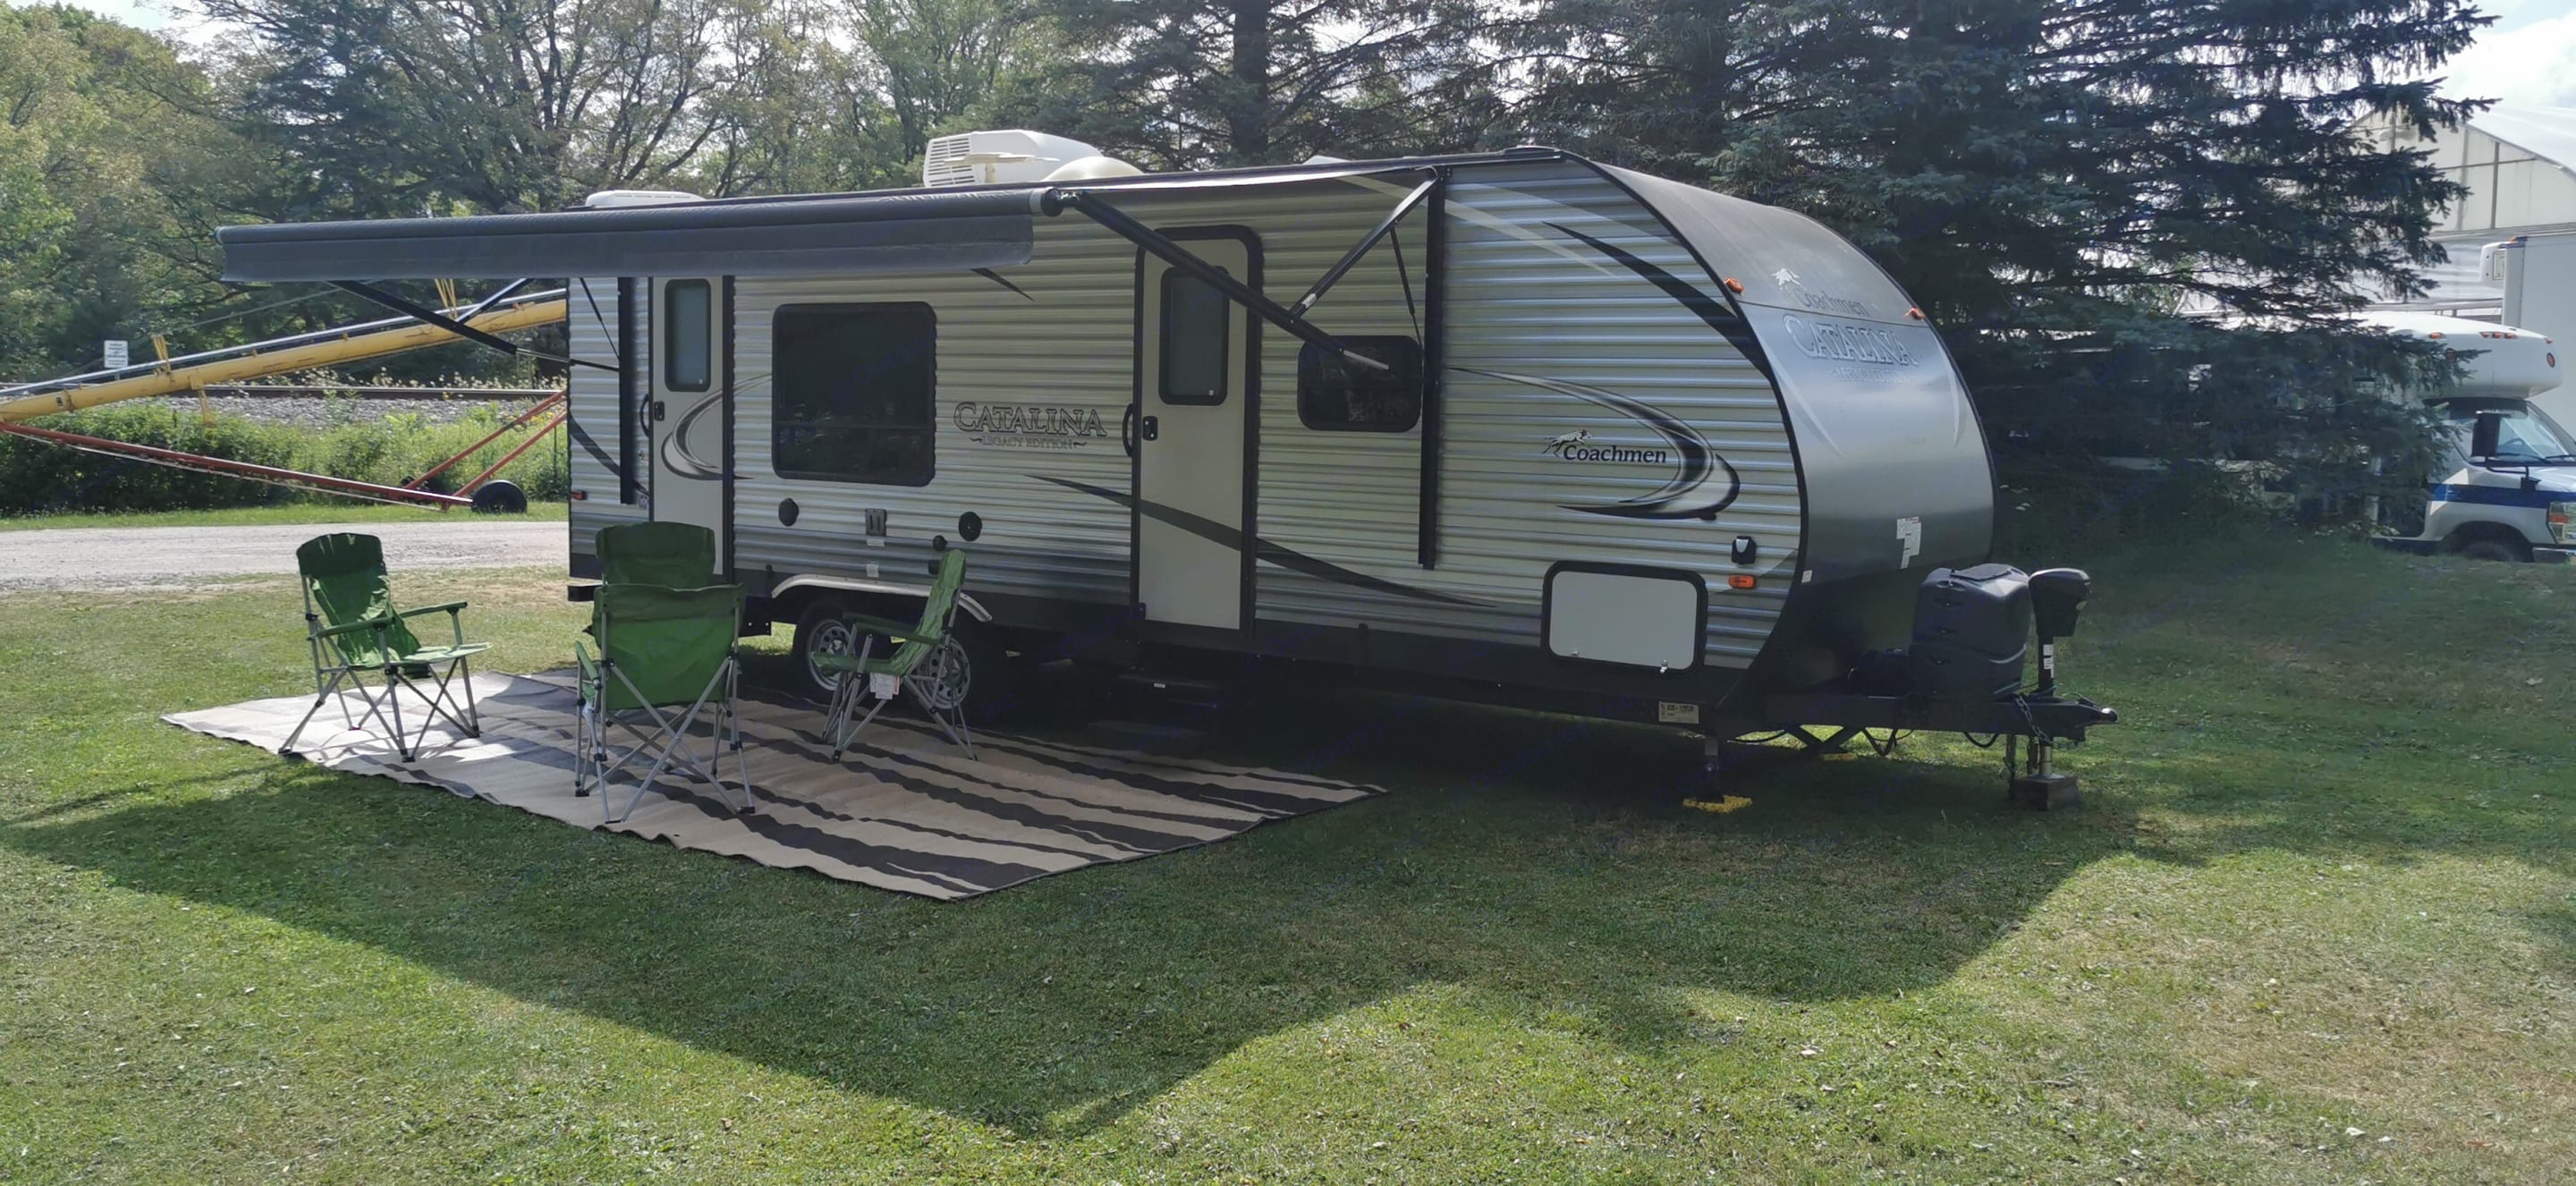 All Jack stands, wheel chocks,  and Blocks included.  Also comes with 2 Tank of propane at no charge.. Coachmen Catalina 2016